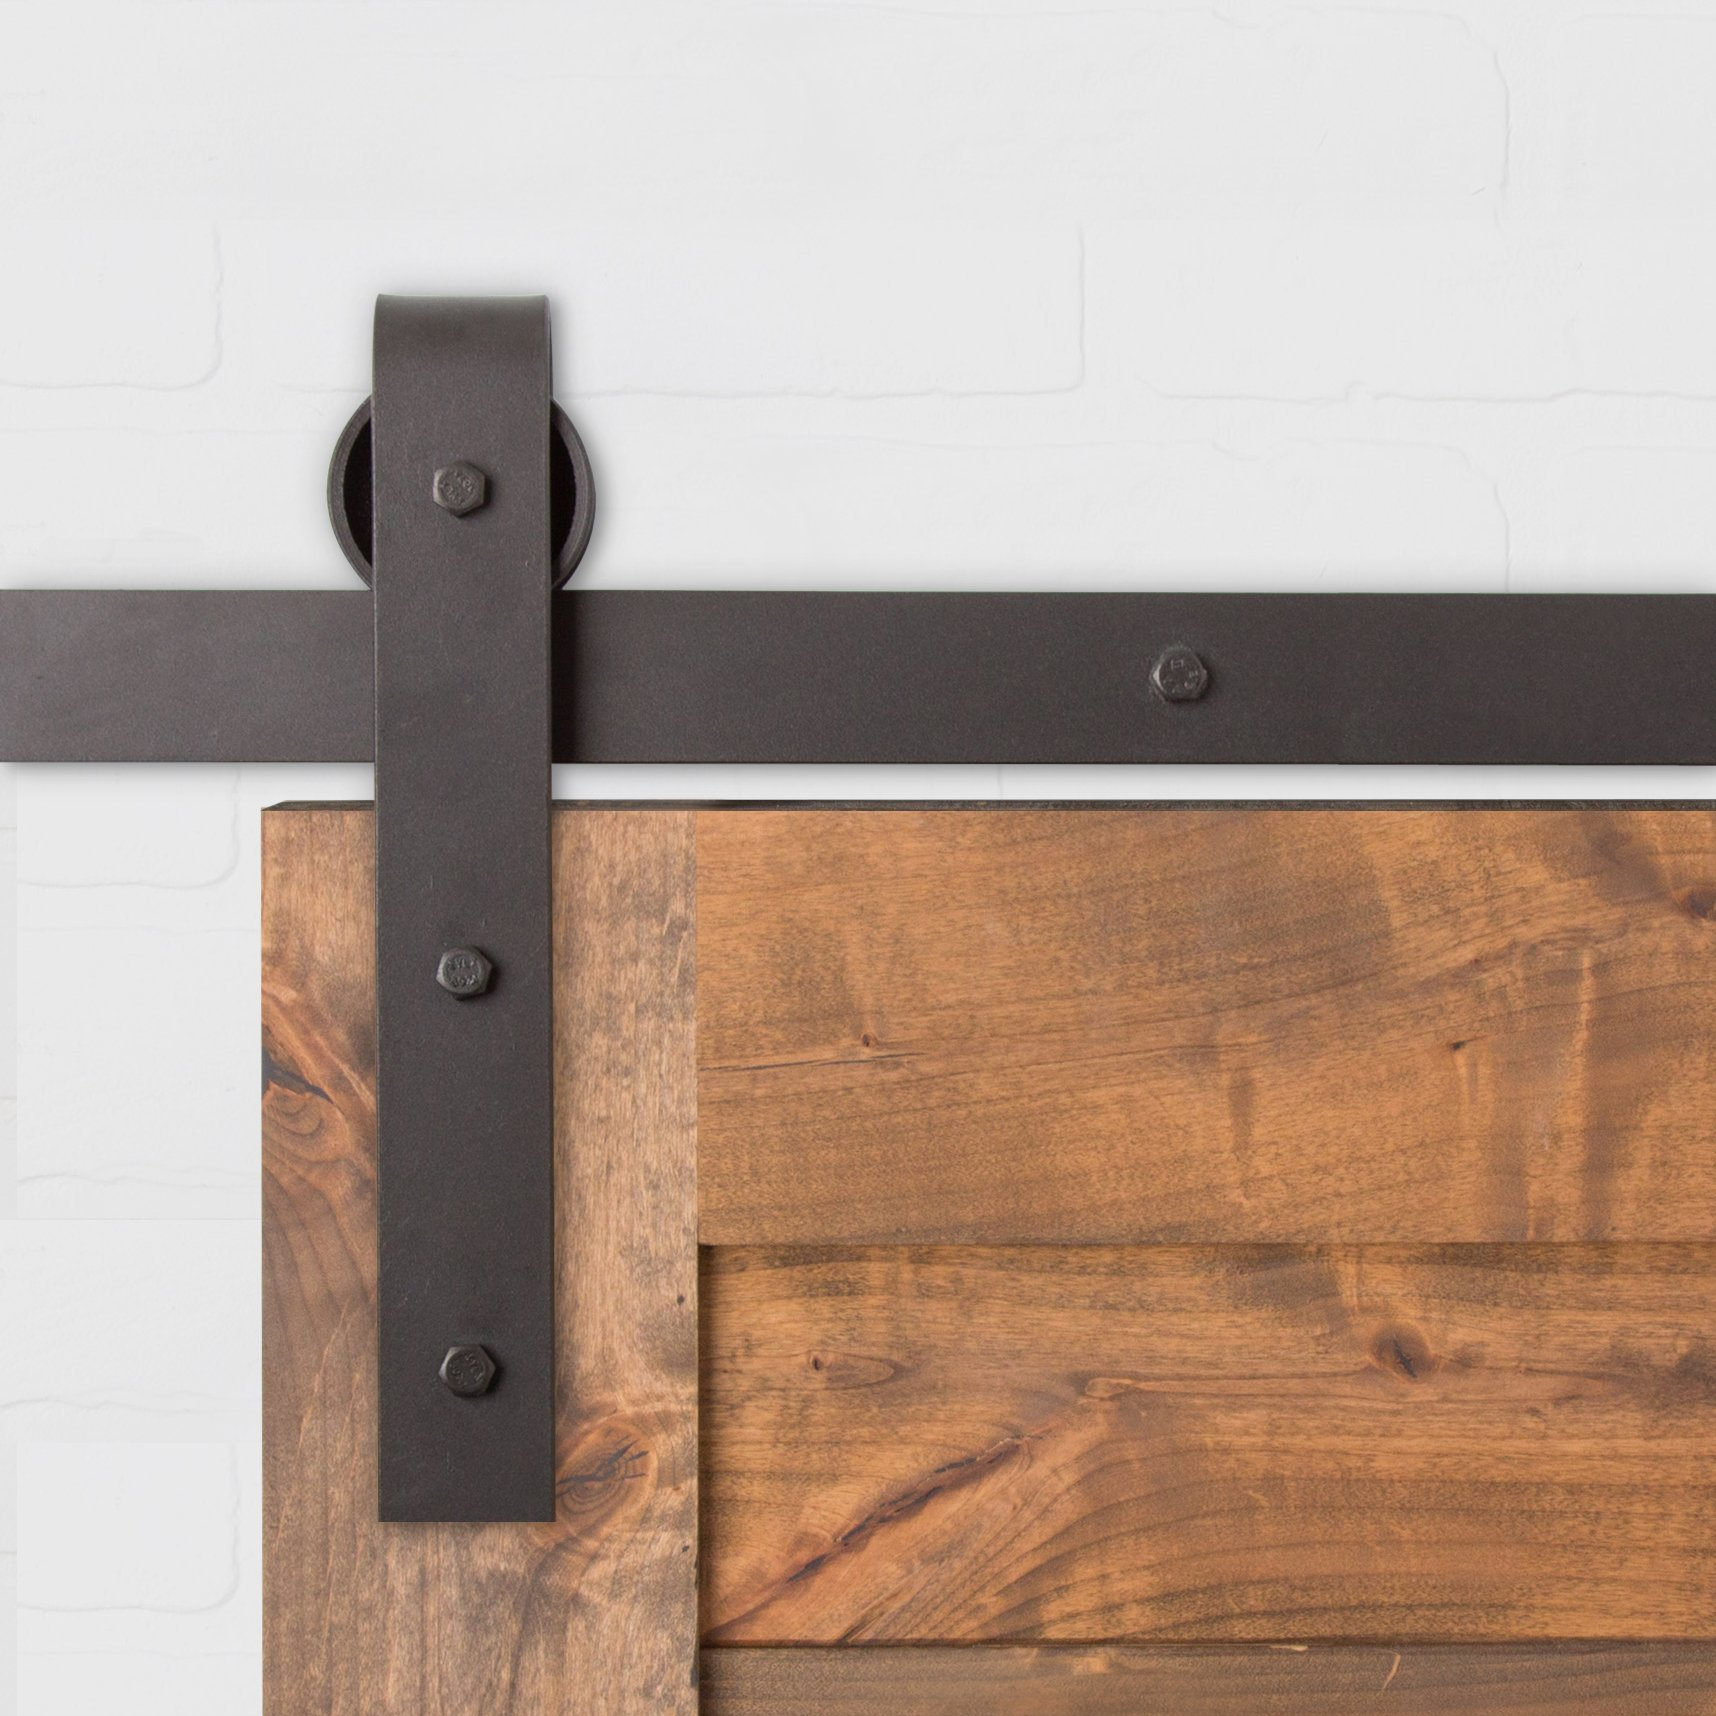 Artisan Hardware 10 FT 5 Inches Sliding Barn Door Hardware Kit | USA MADE System | Oil Rubbed Bronze by Artisan Hardware